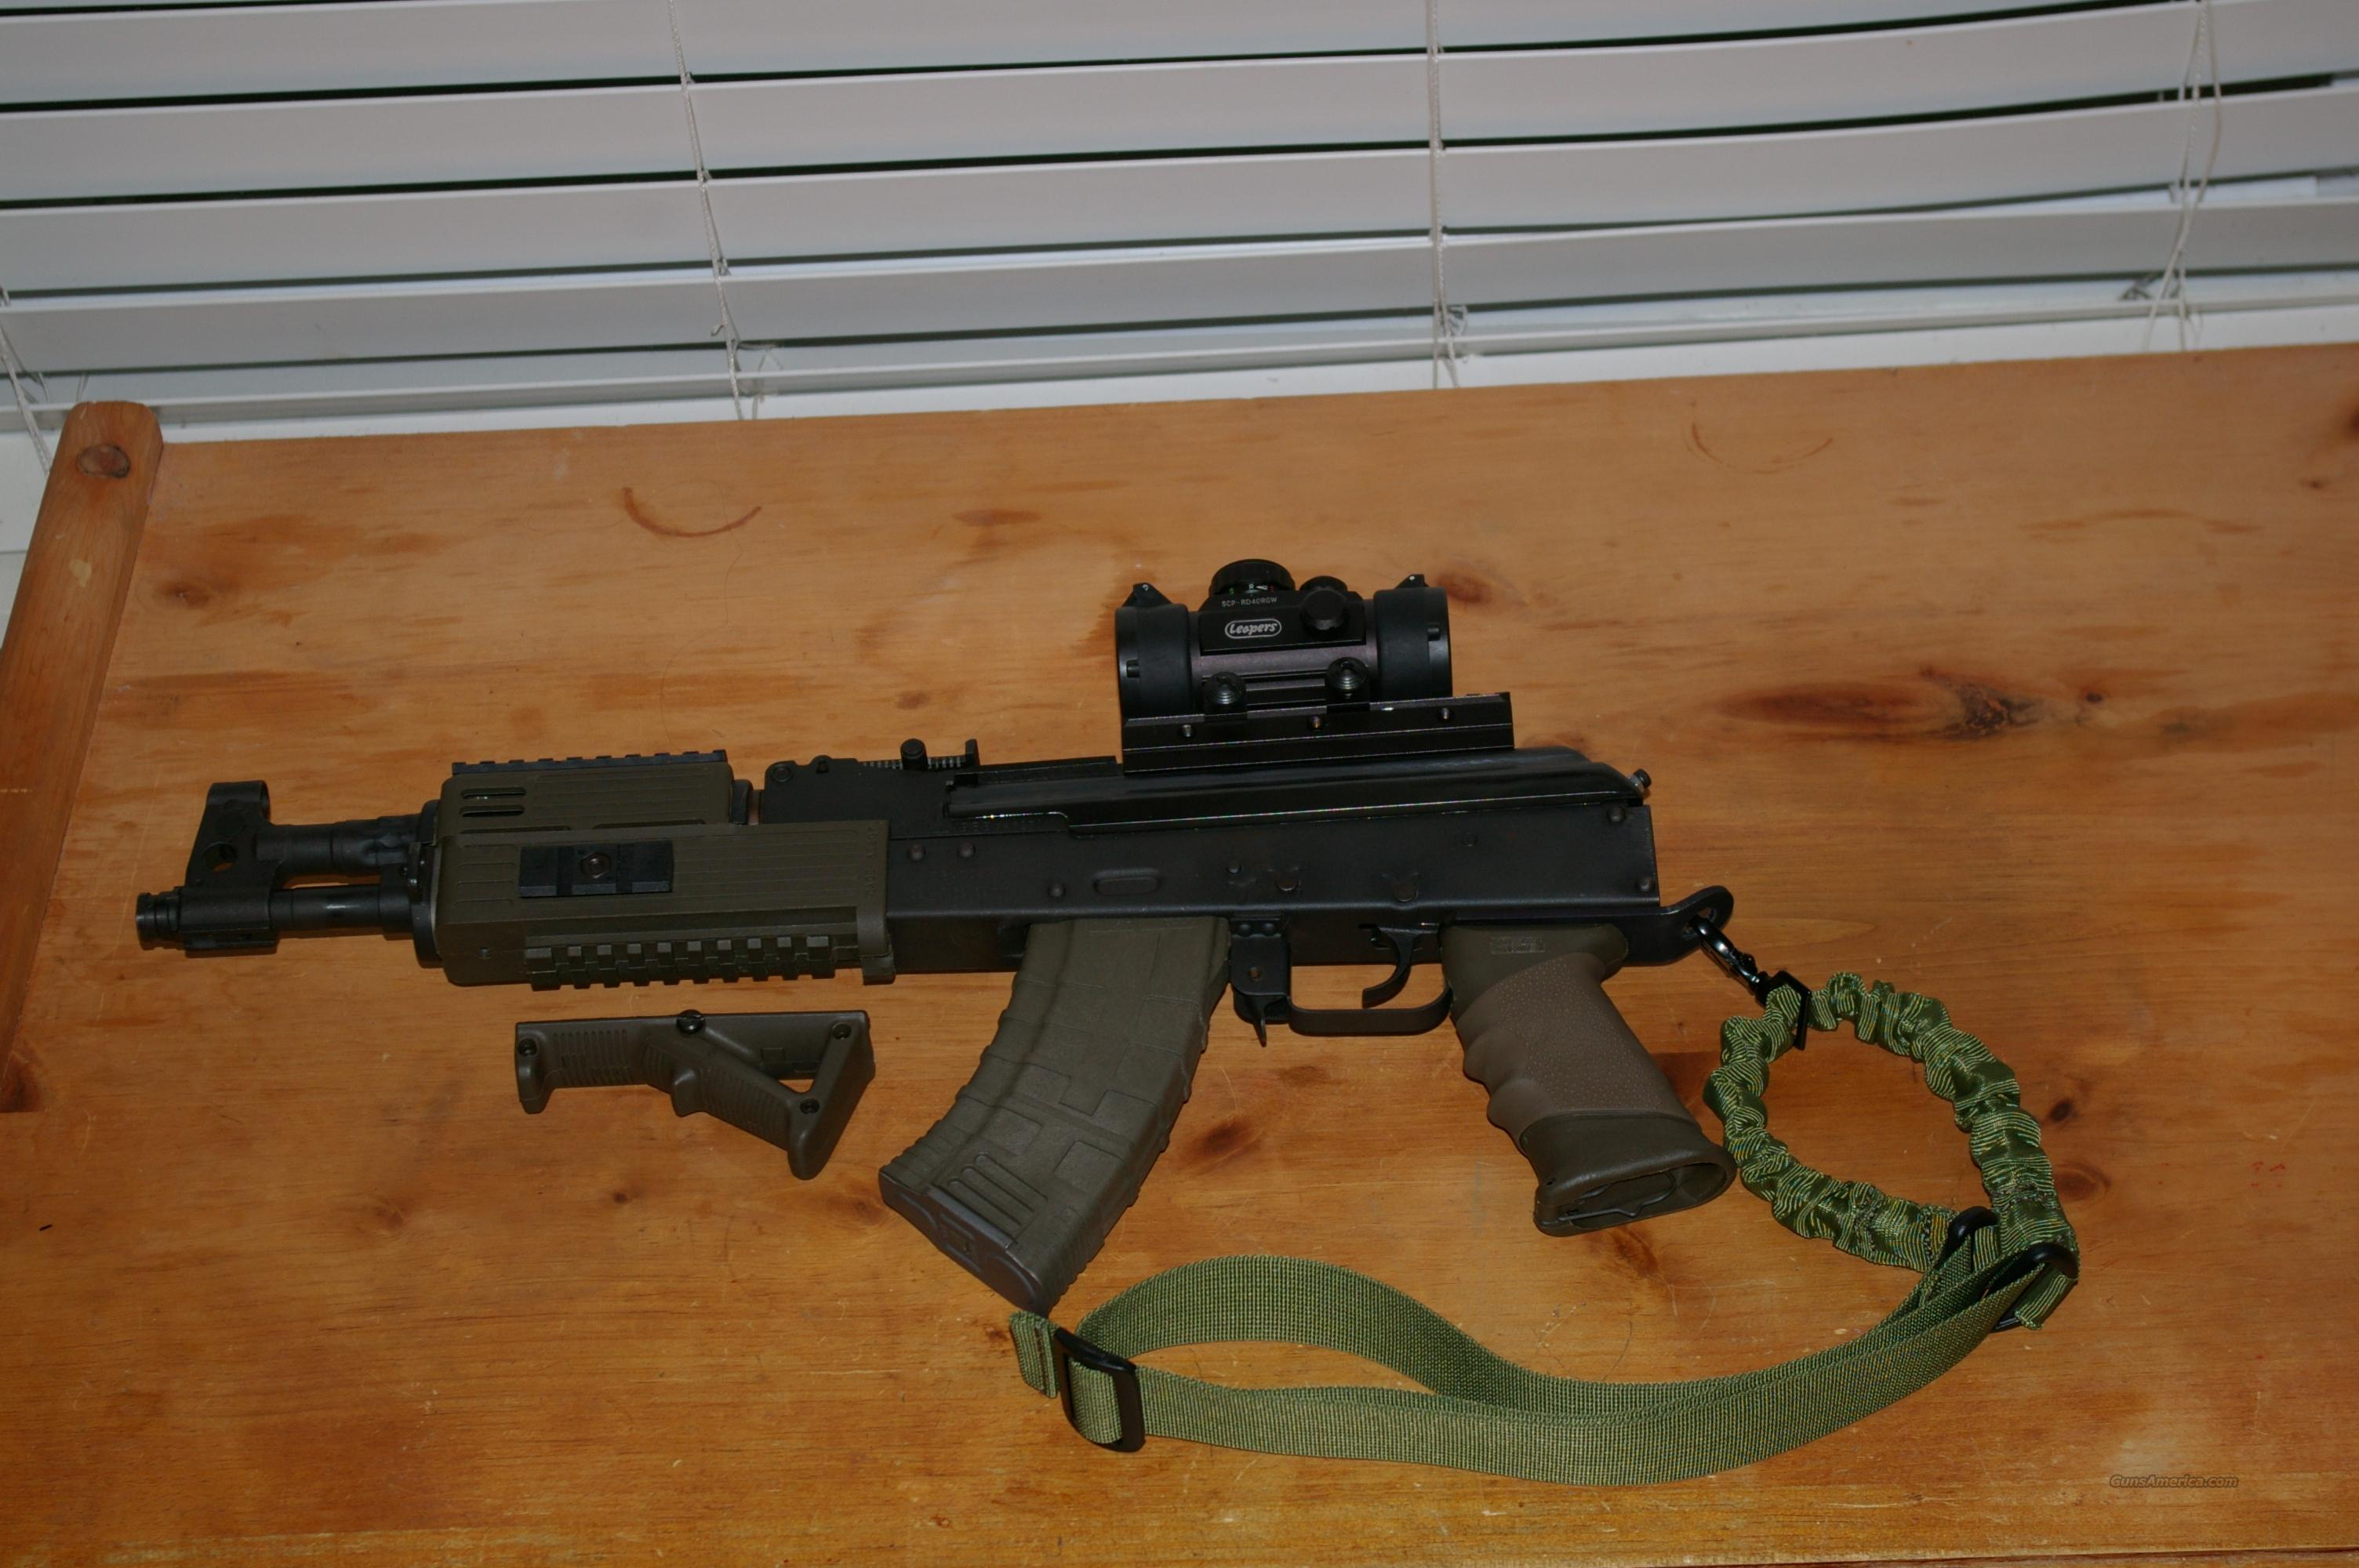 Tactical AK47 7.62x39 Draco Pistol with many upgrades and extras, sling conversion, dust cover conversion, optic, etc.  Guns > Pistols > A Misc Pistols